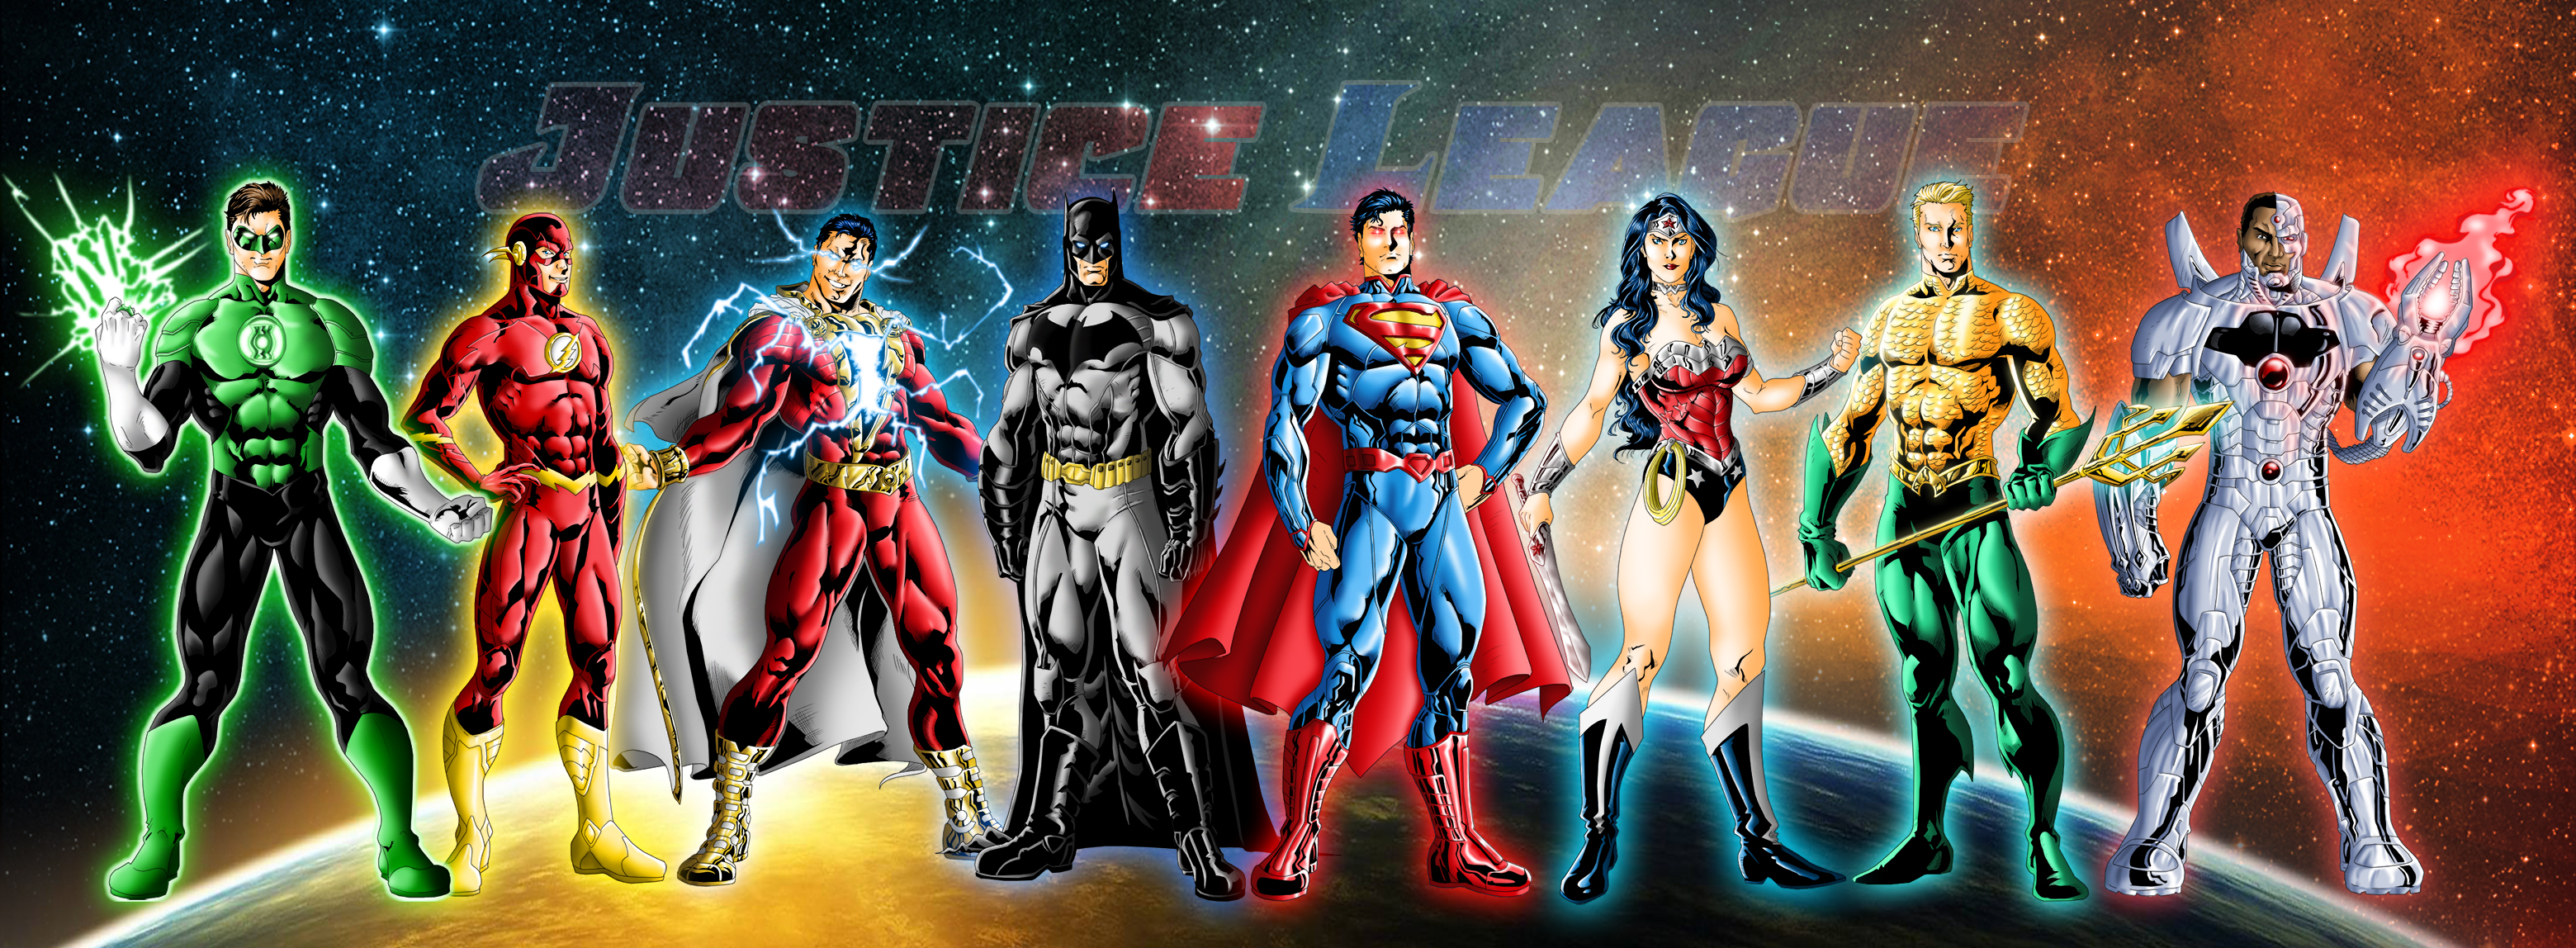 New 52 justice league by jeansinclairarts on deviantart - New 52 wallpaper ...